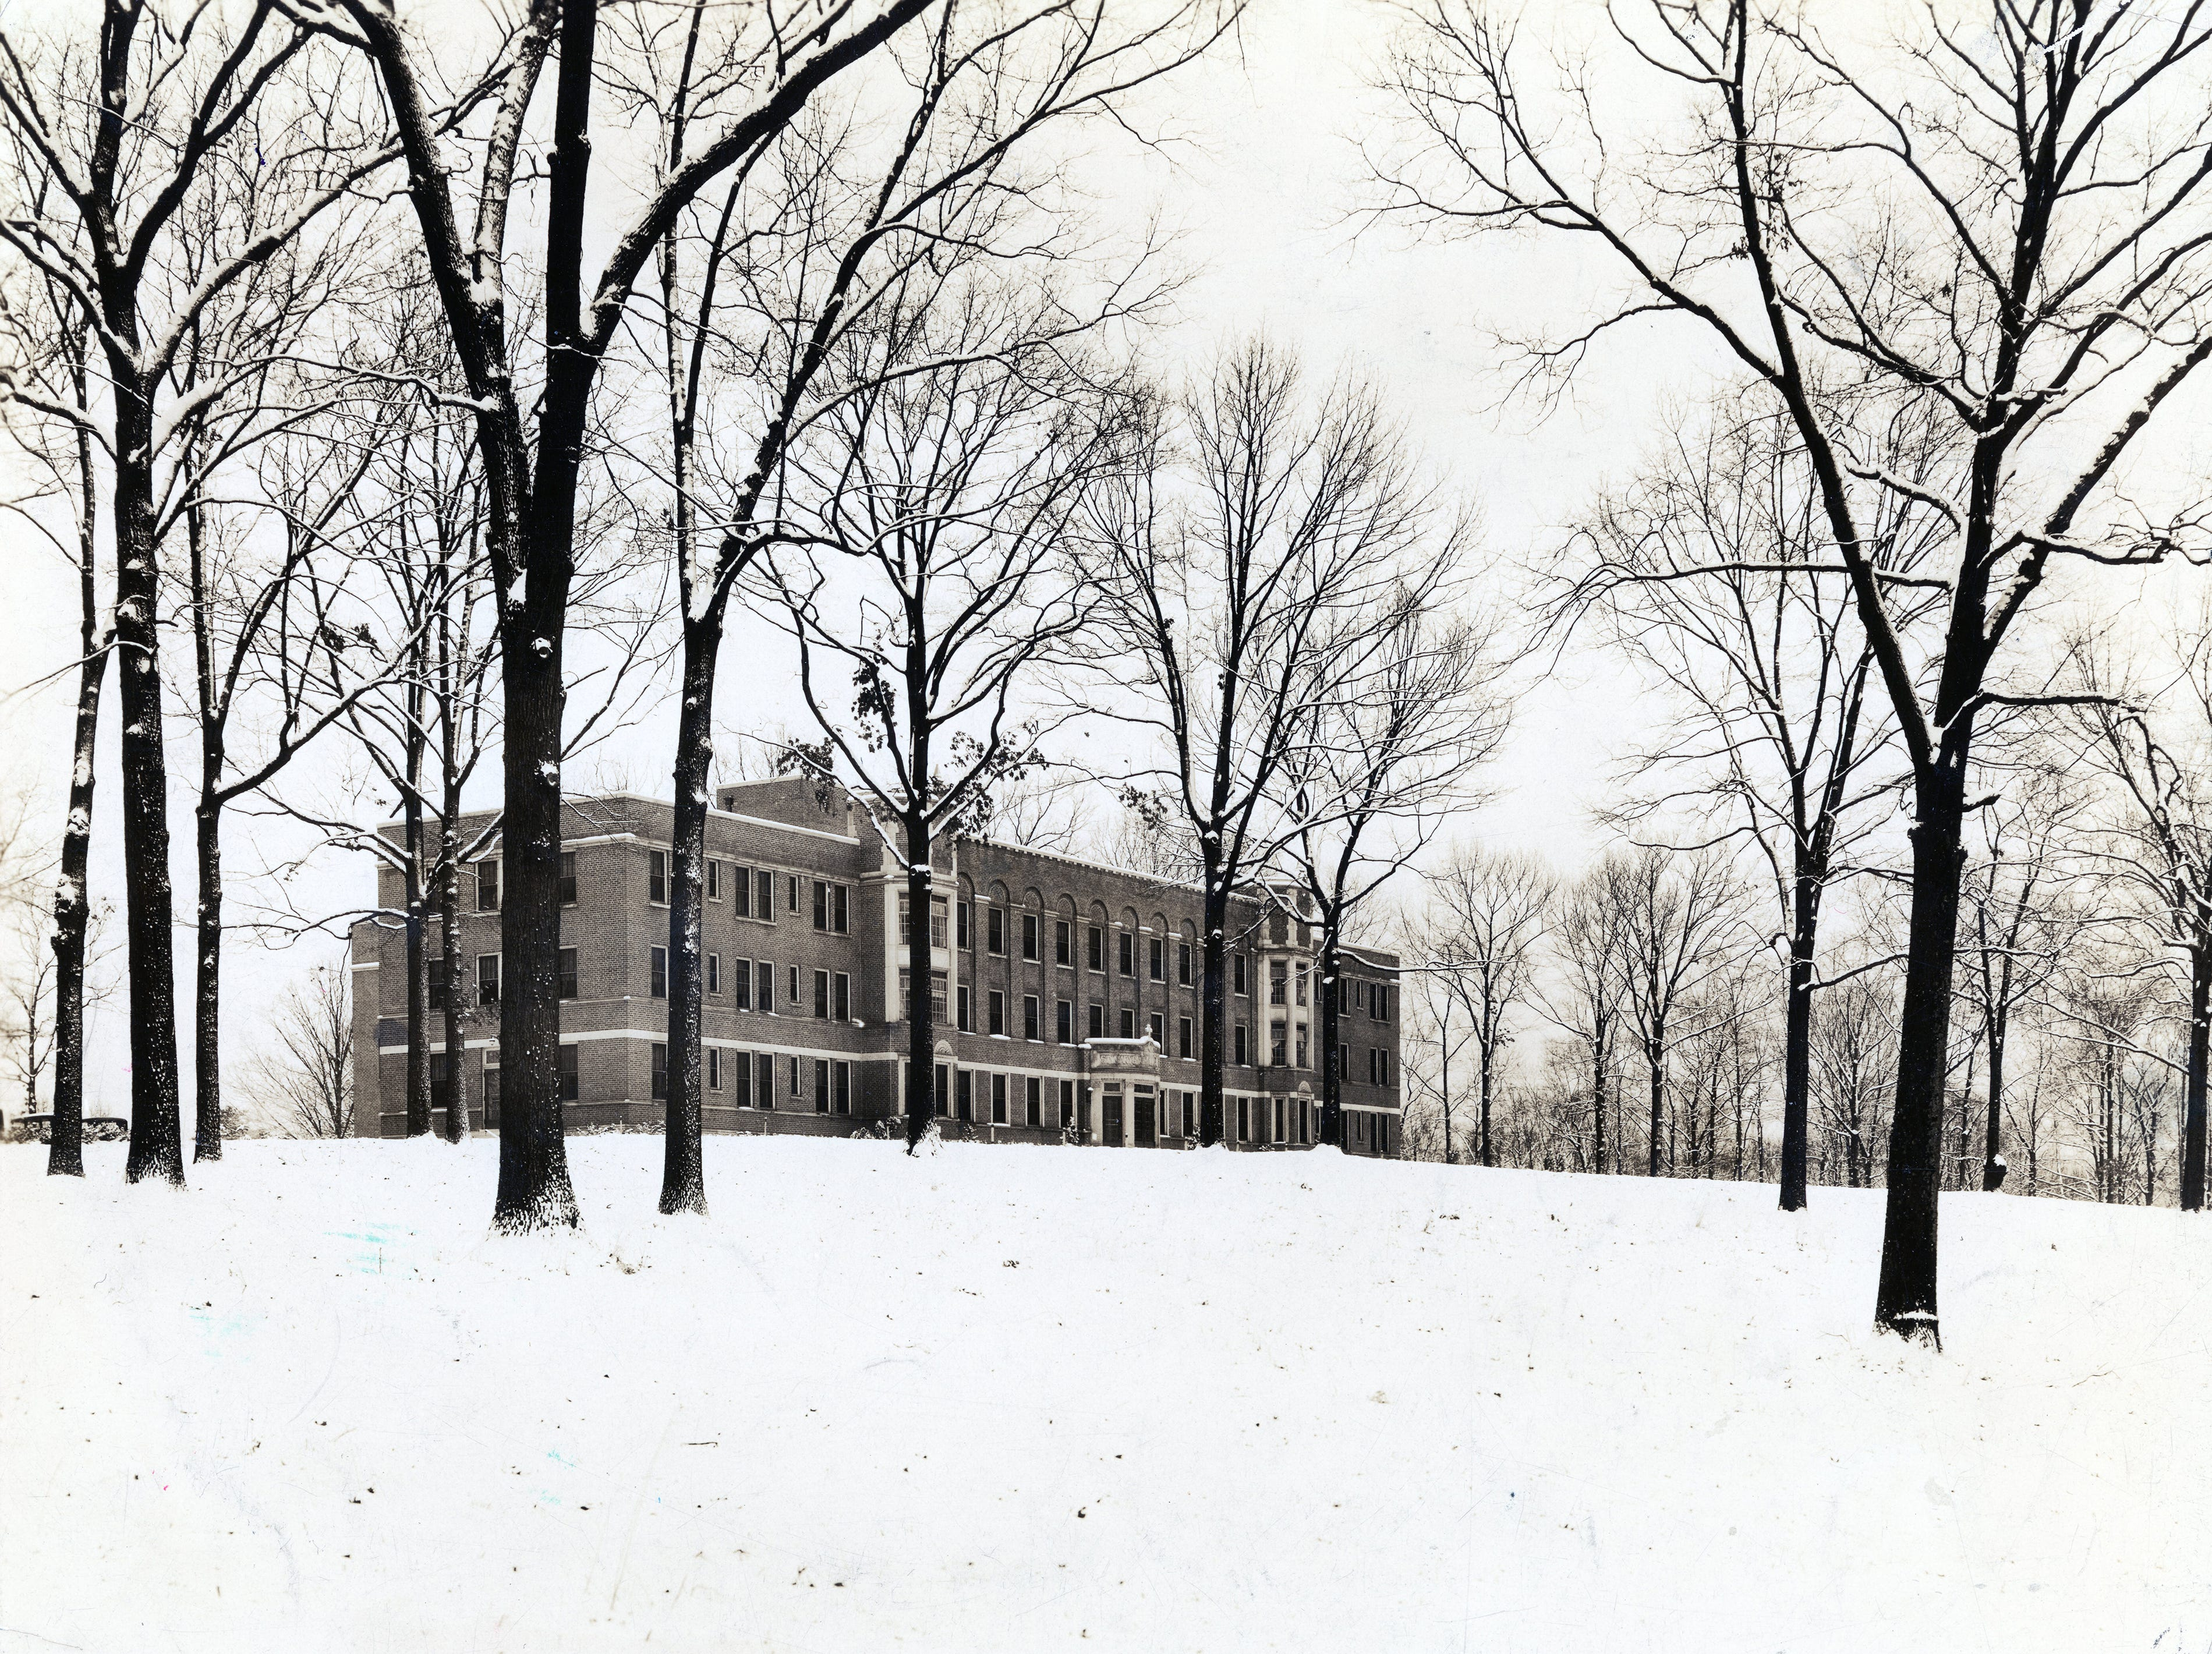 Winter scene of St. Mary's Hospital in the 1930s.